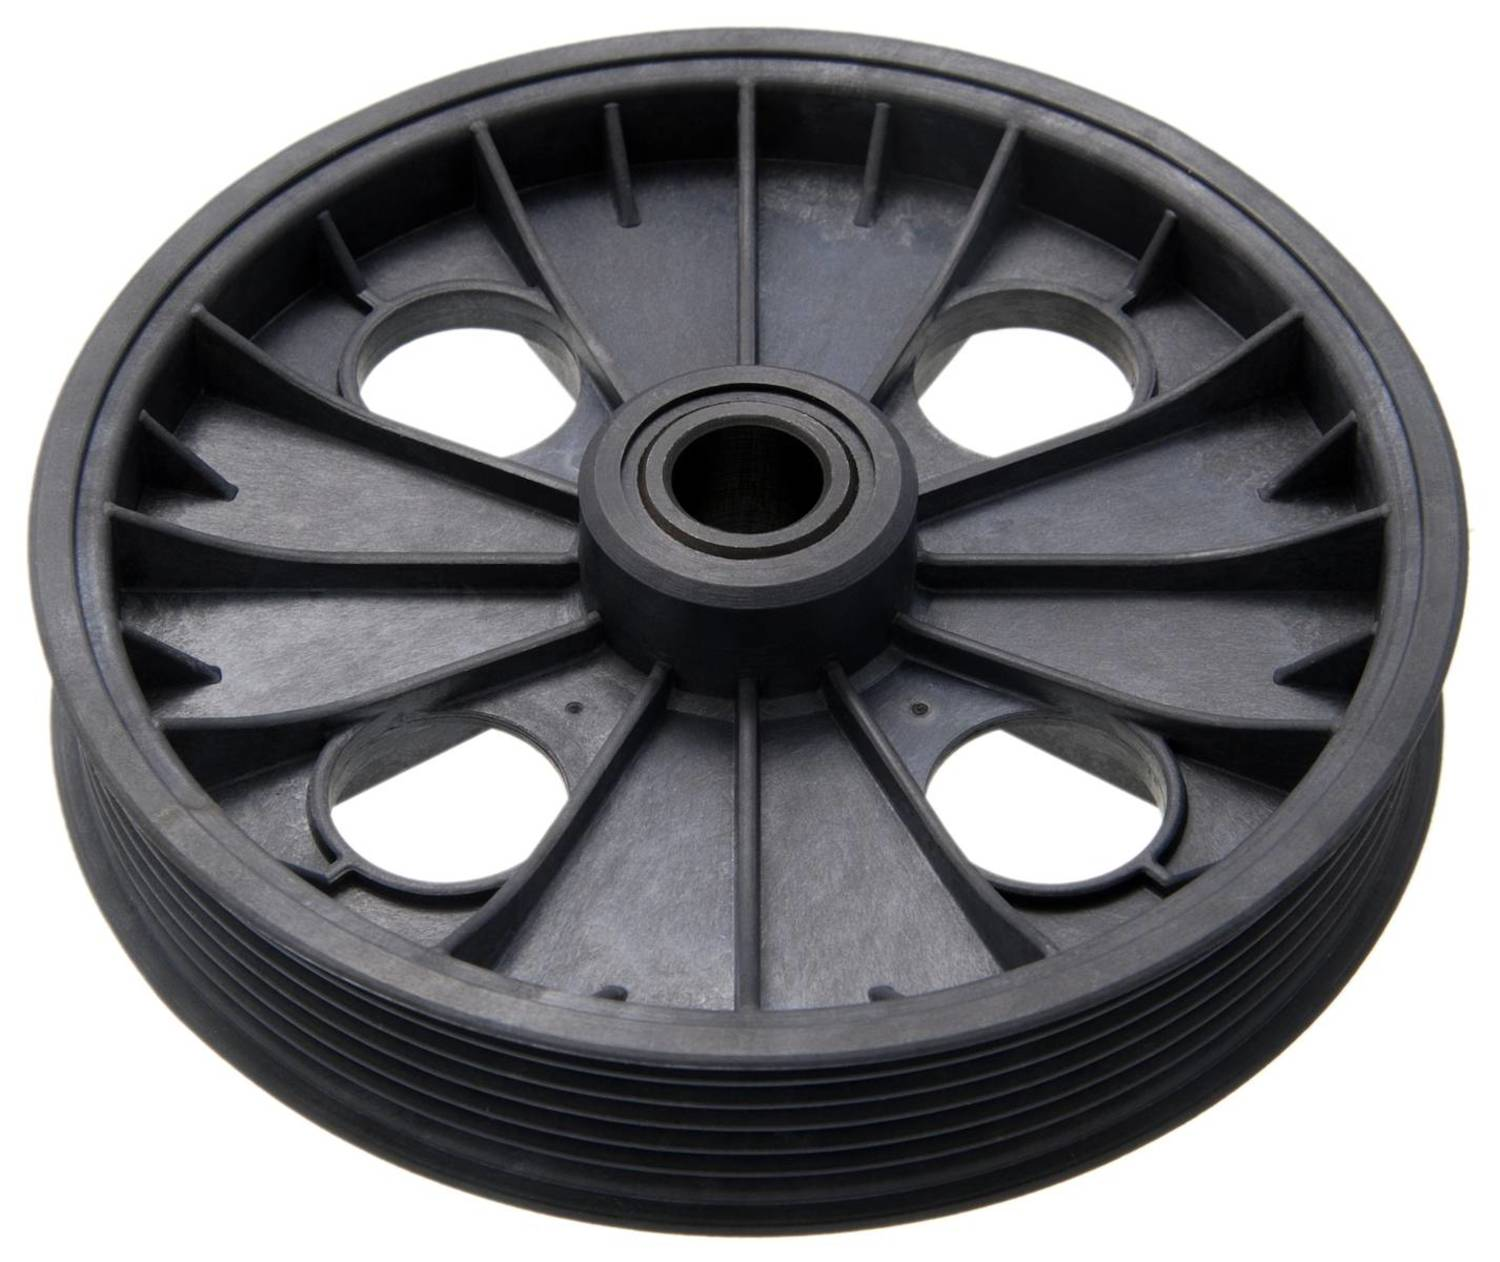 SHAFT SUB ASSEMBLY PULLEY - For Volvo S60 I 2002-2009 OEM 8683377